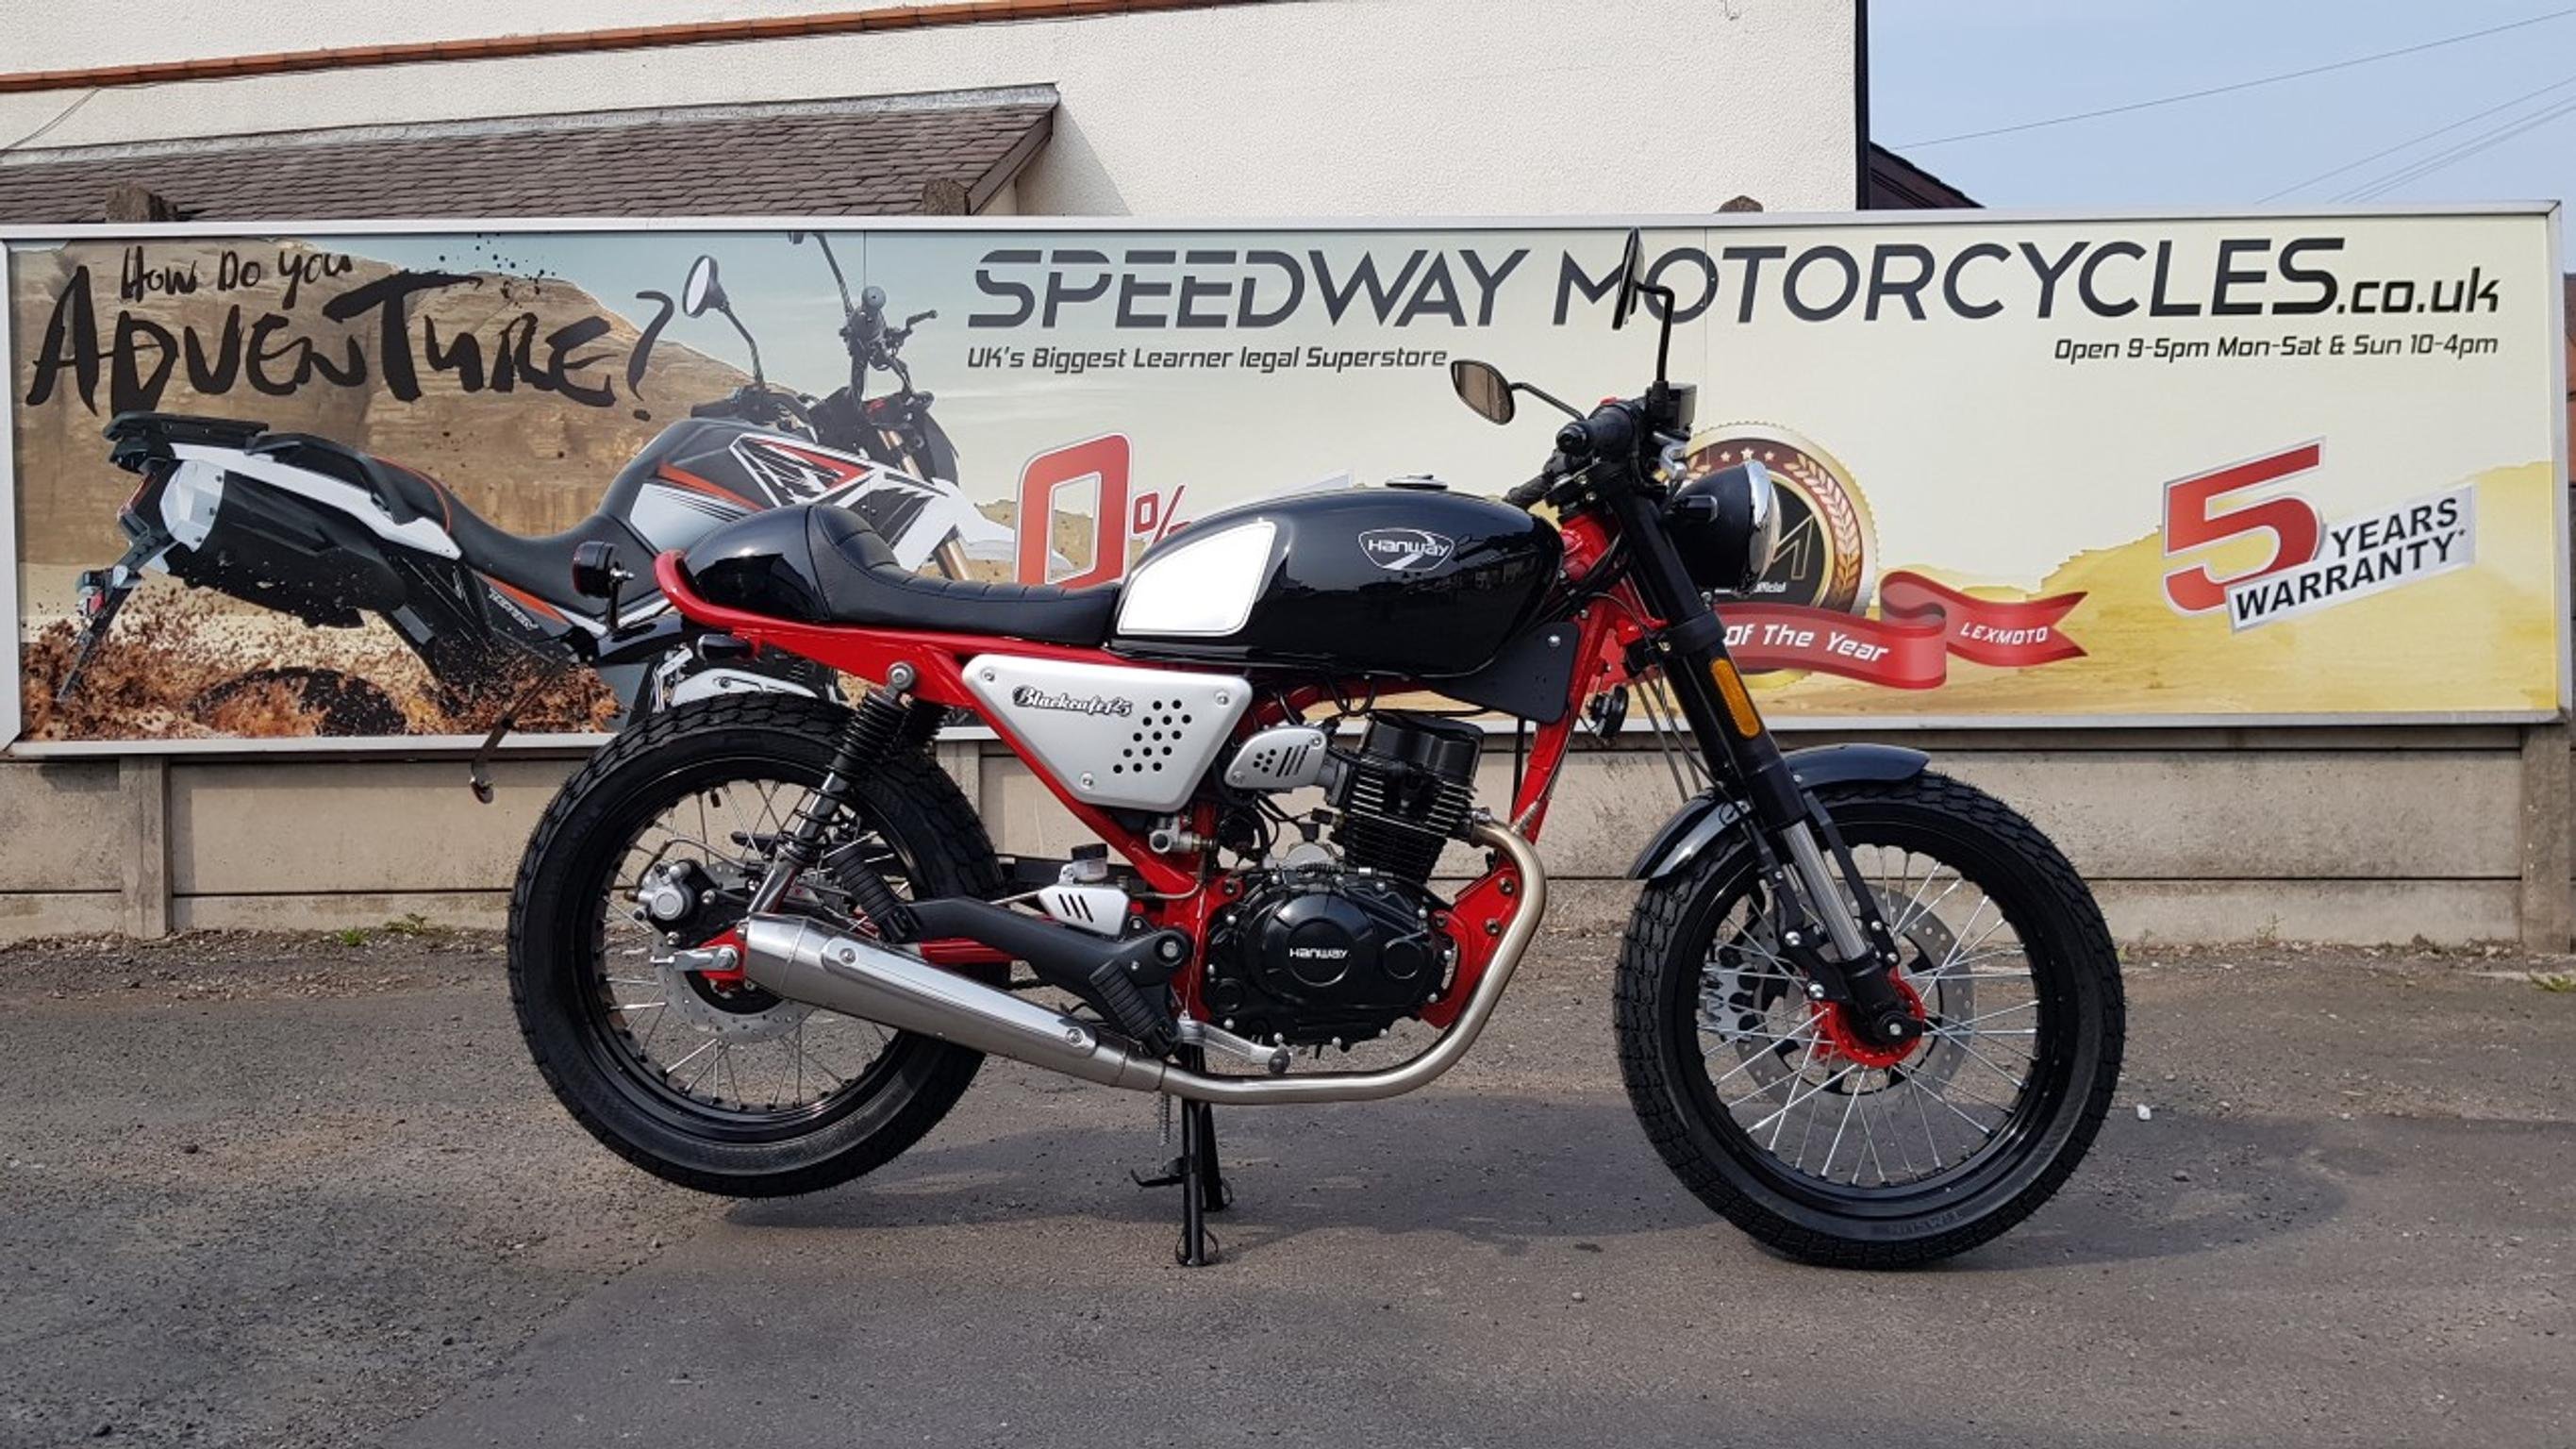 Hanway Cafe Racer 125cc Motorcycle Motorbike In Ws115bu Cannock For 2 299 00 For Sale Shpock